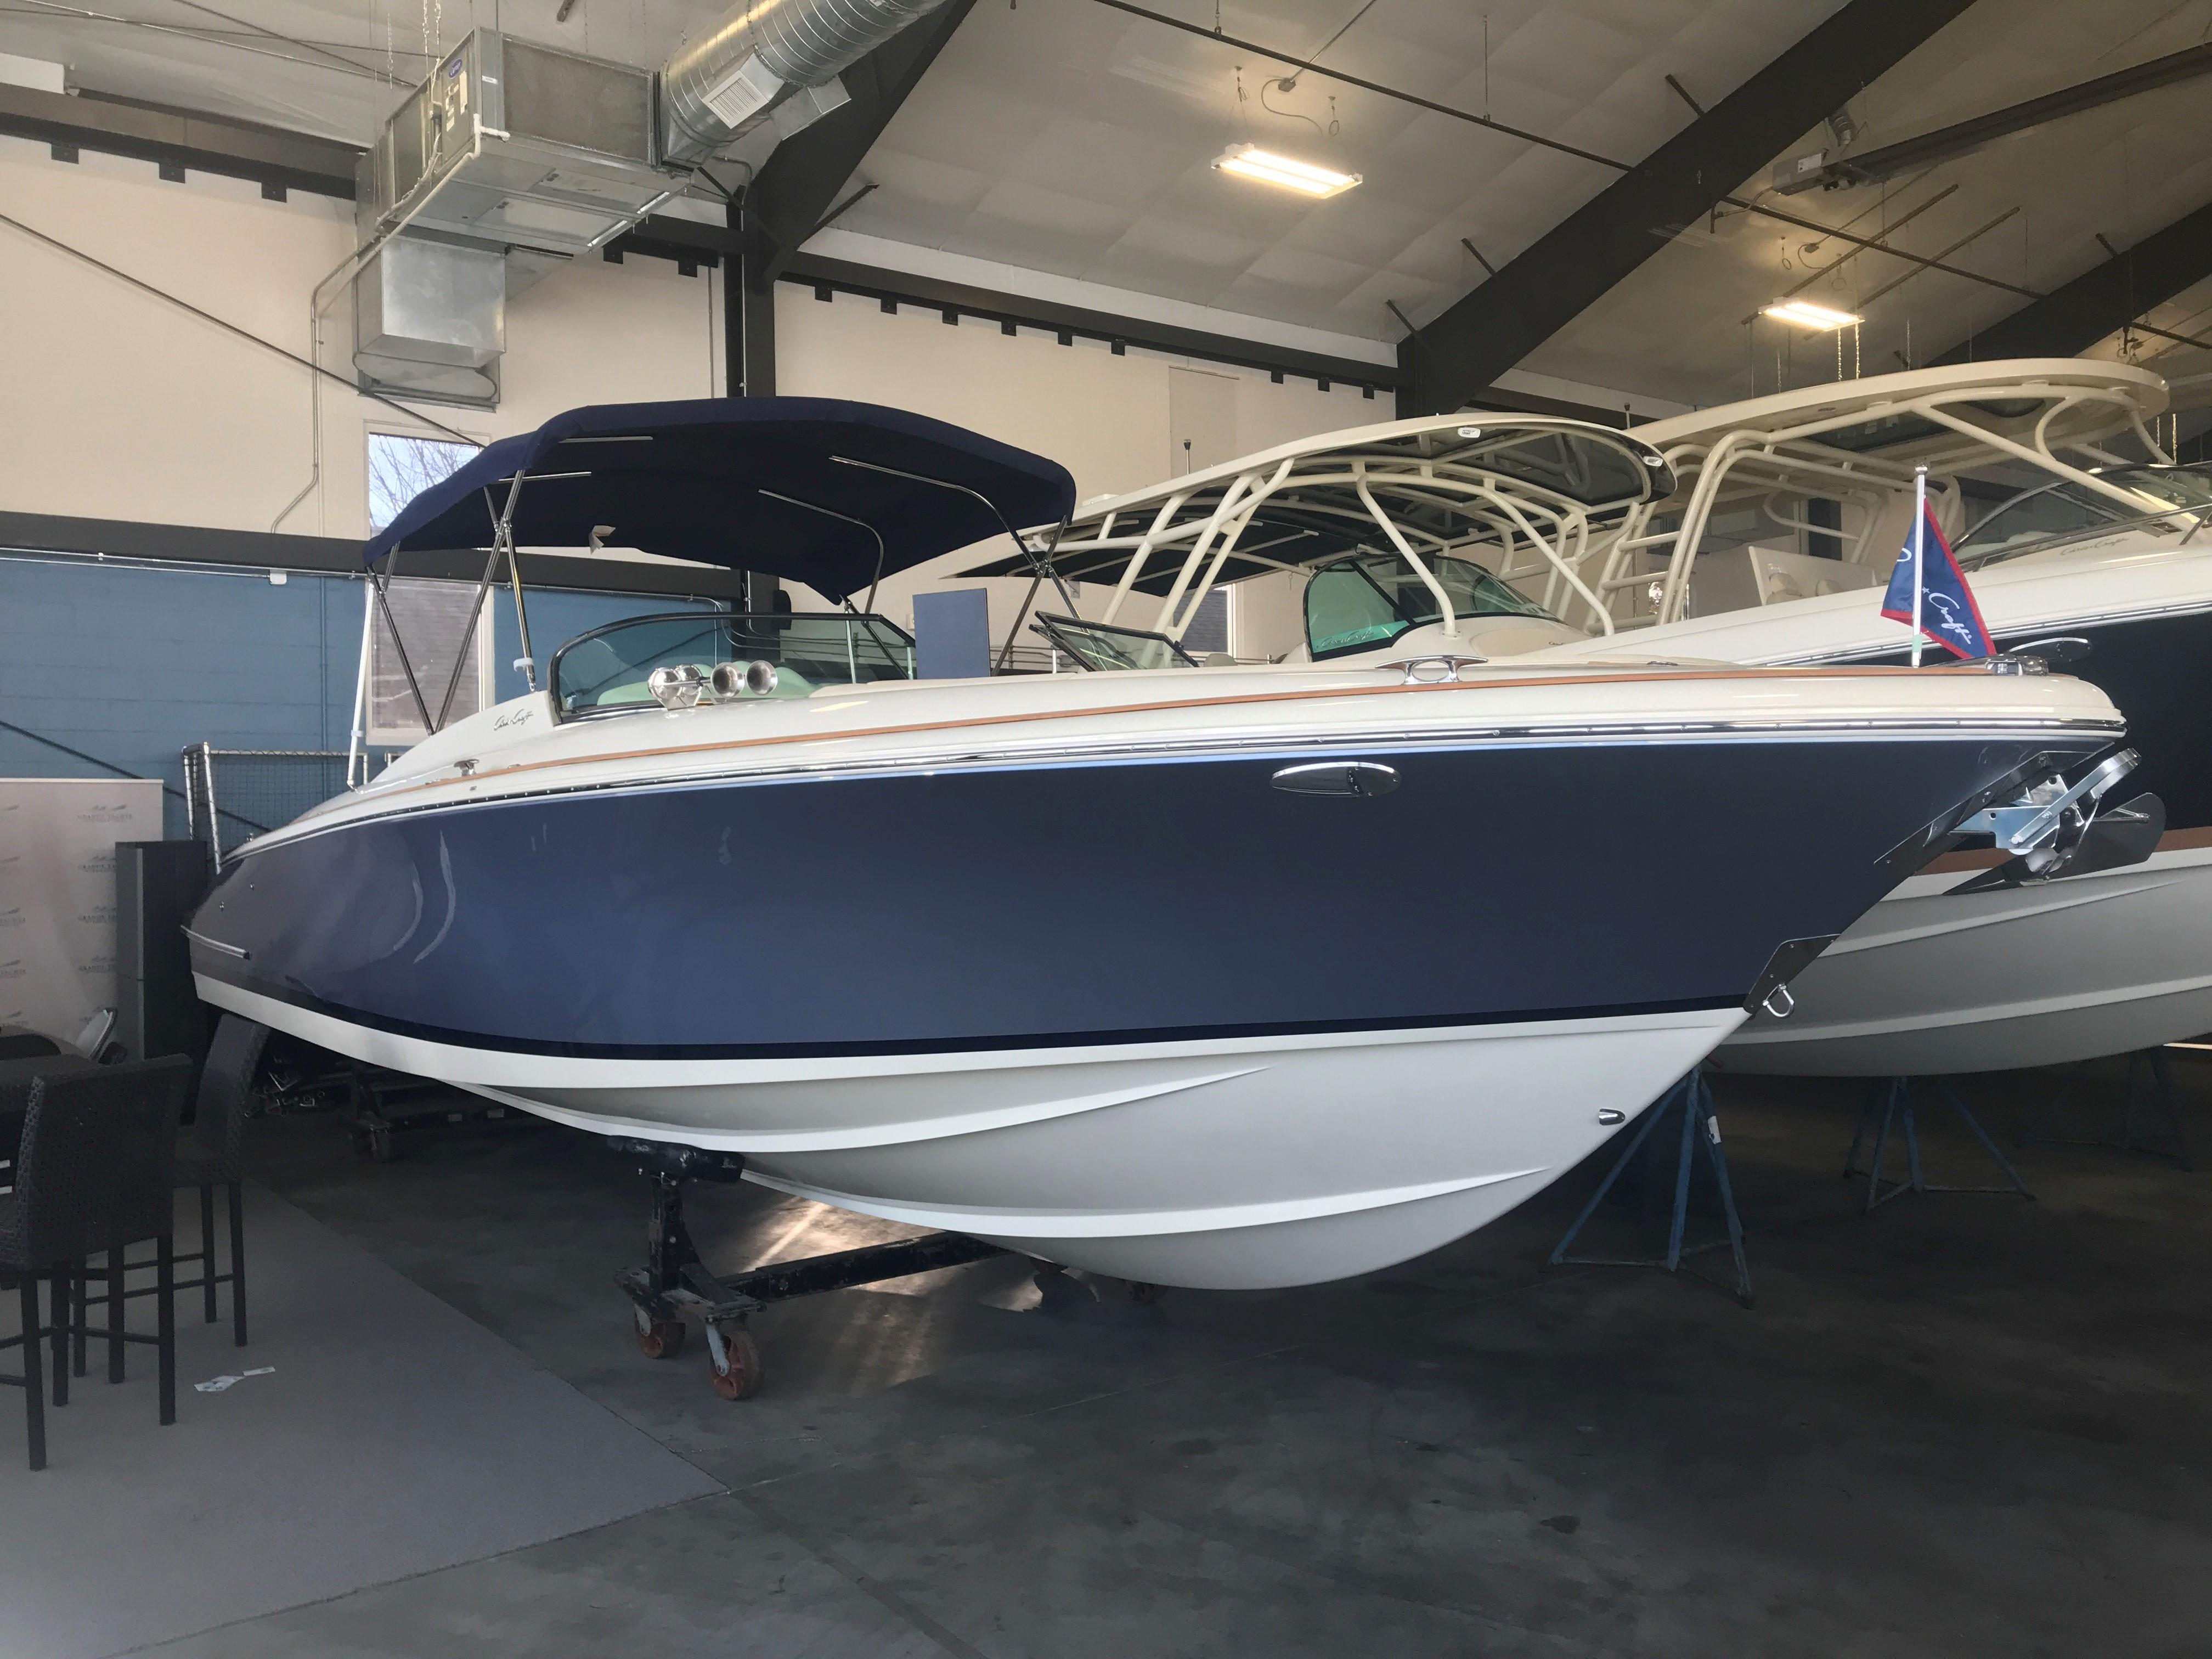 N60028 2018 Chris-Craft Launch 34 yacht for sale in